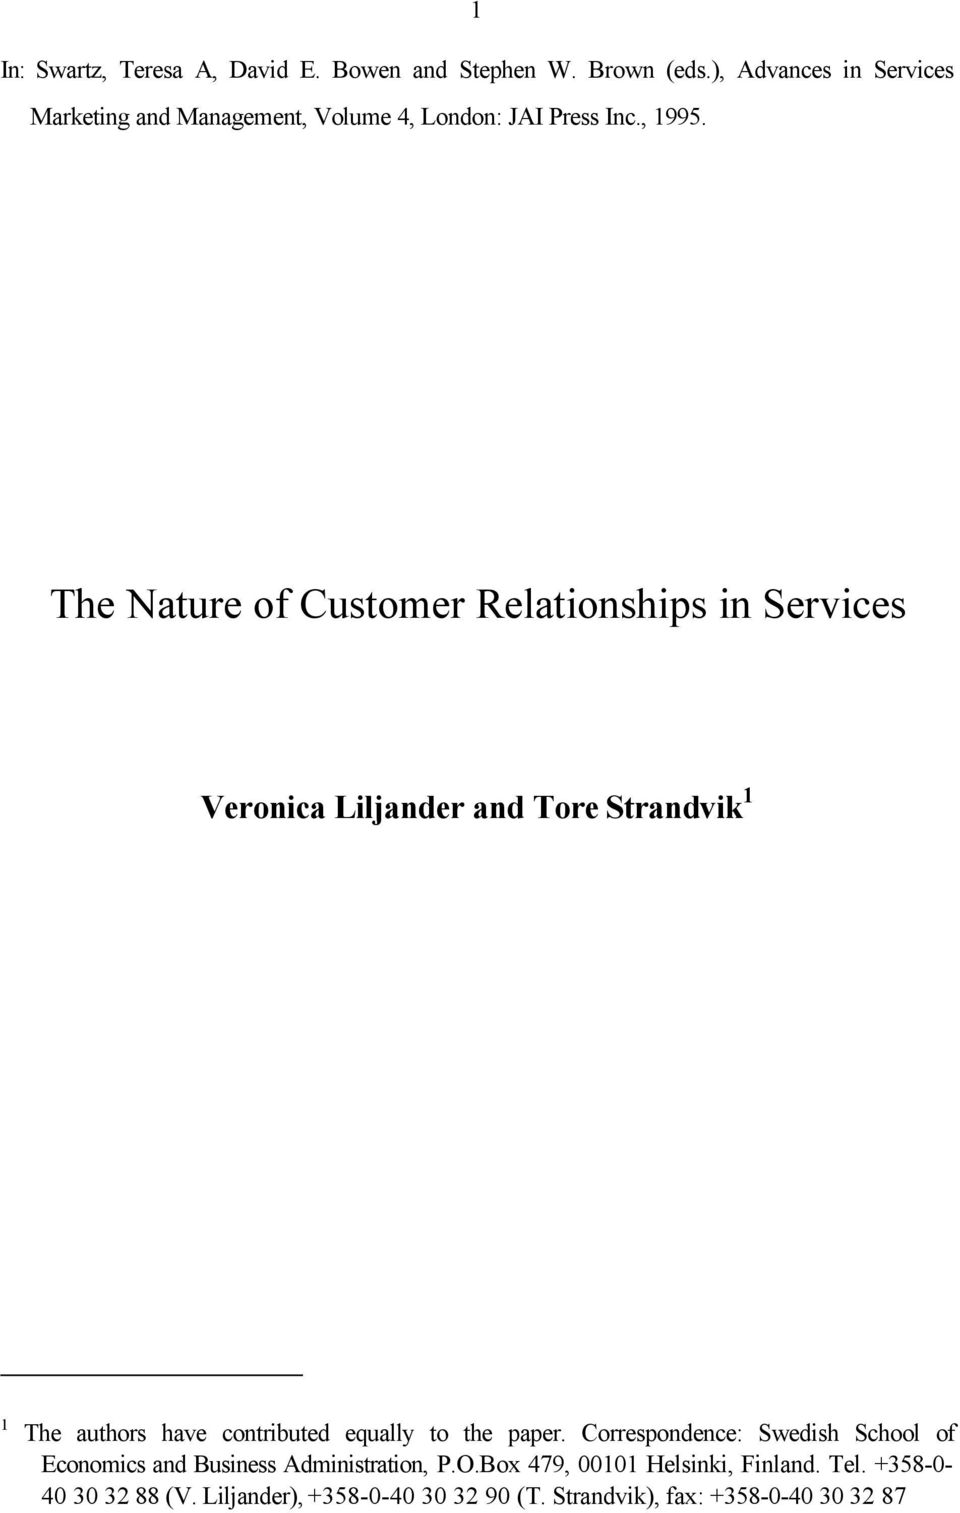 The Nature of Customer Relationships in Services Veronica Liljander and Tore Strandvik 1 1 The authors have contributed